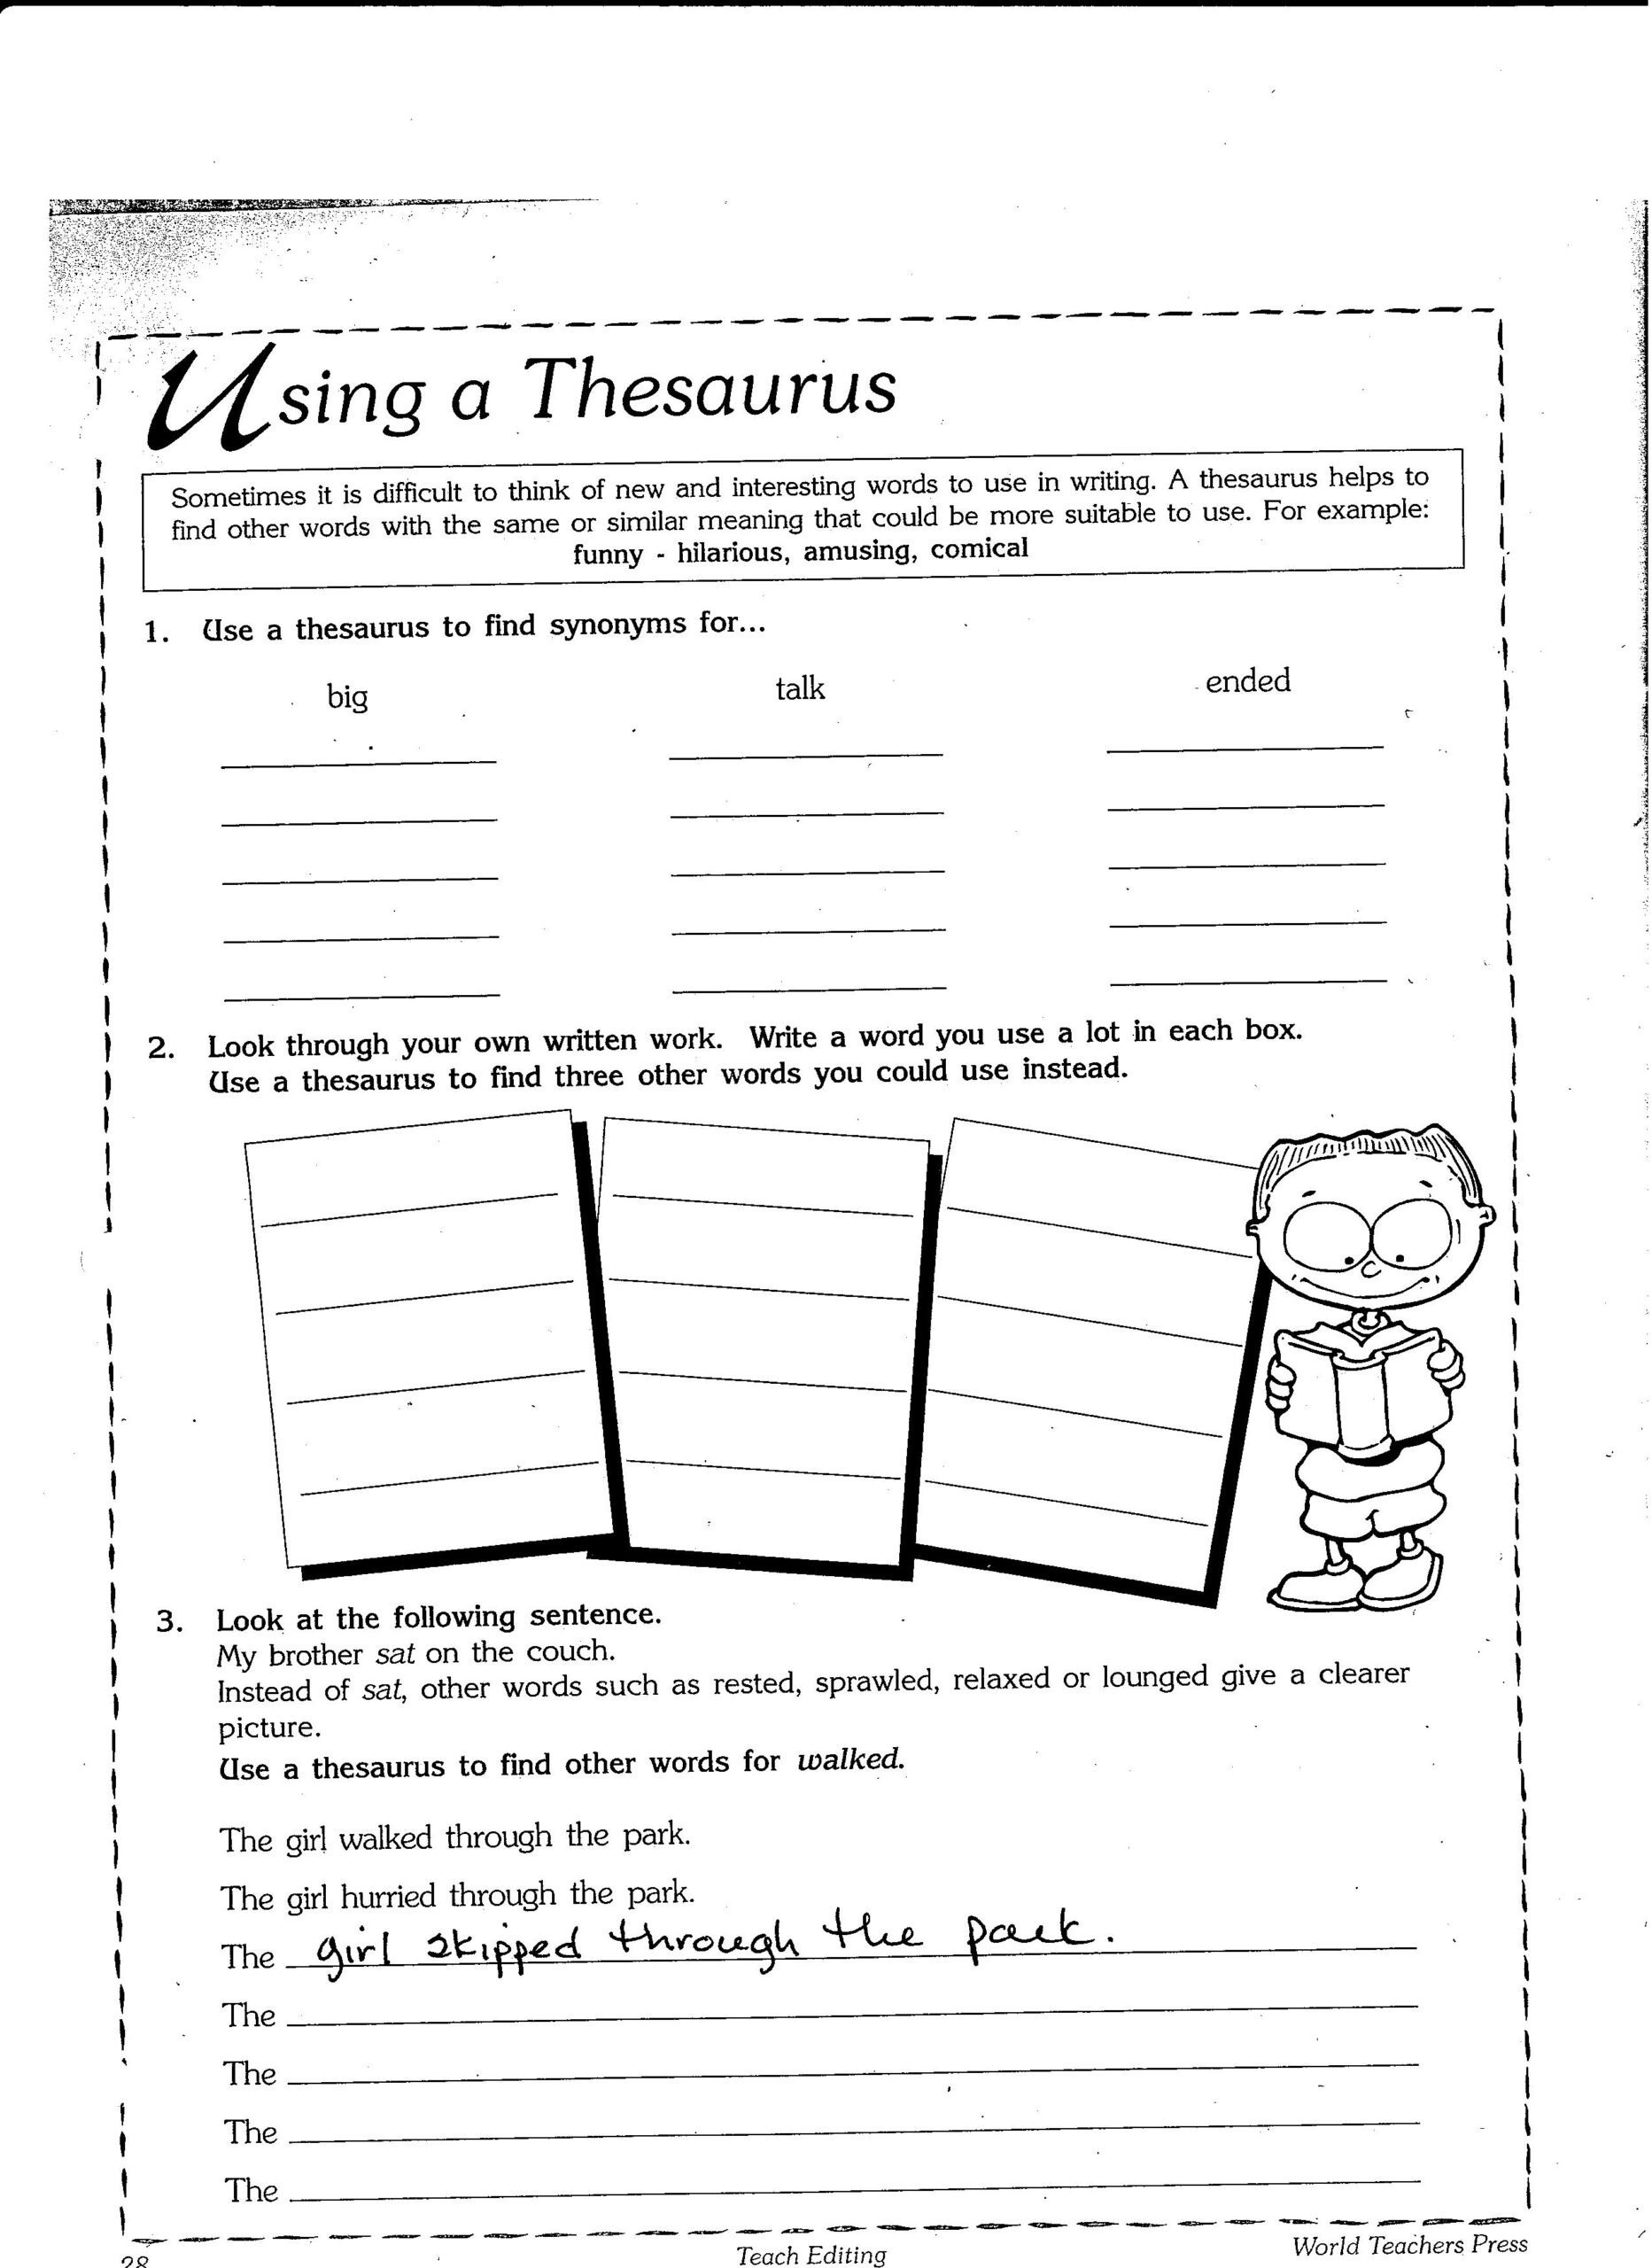 Editing Worksheets 3rd Grade Cool Math Games for Kids Best Coloring Pages to Print Free